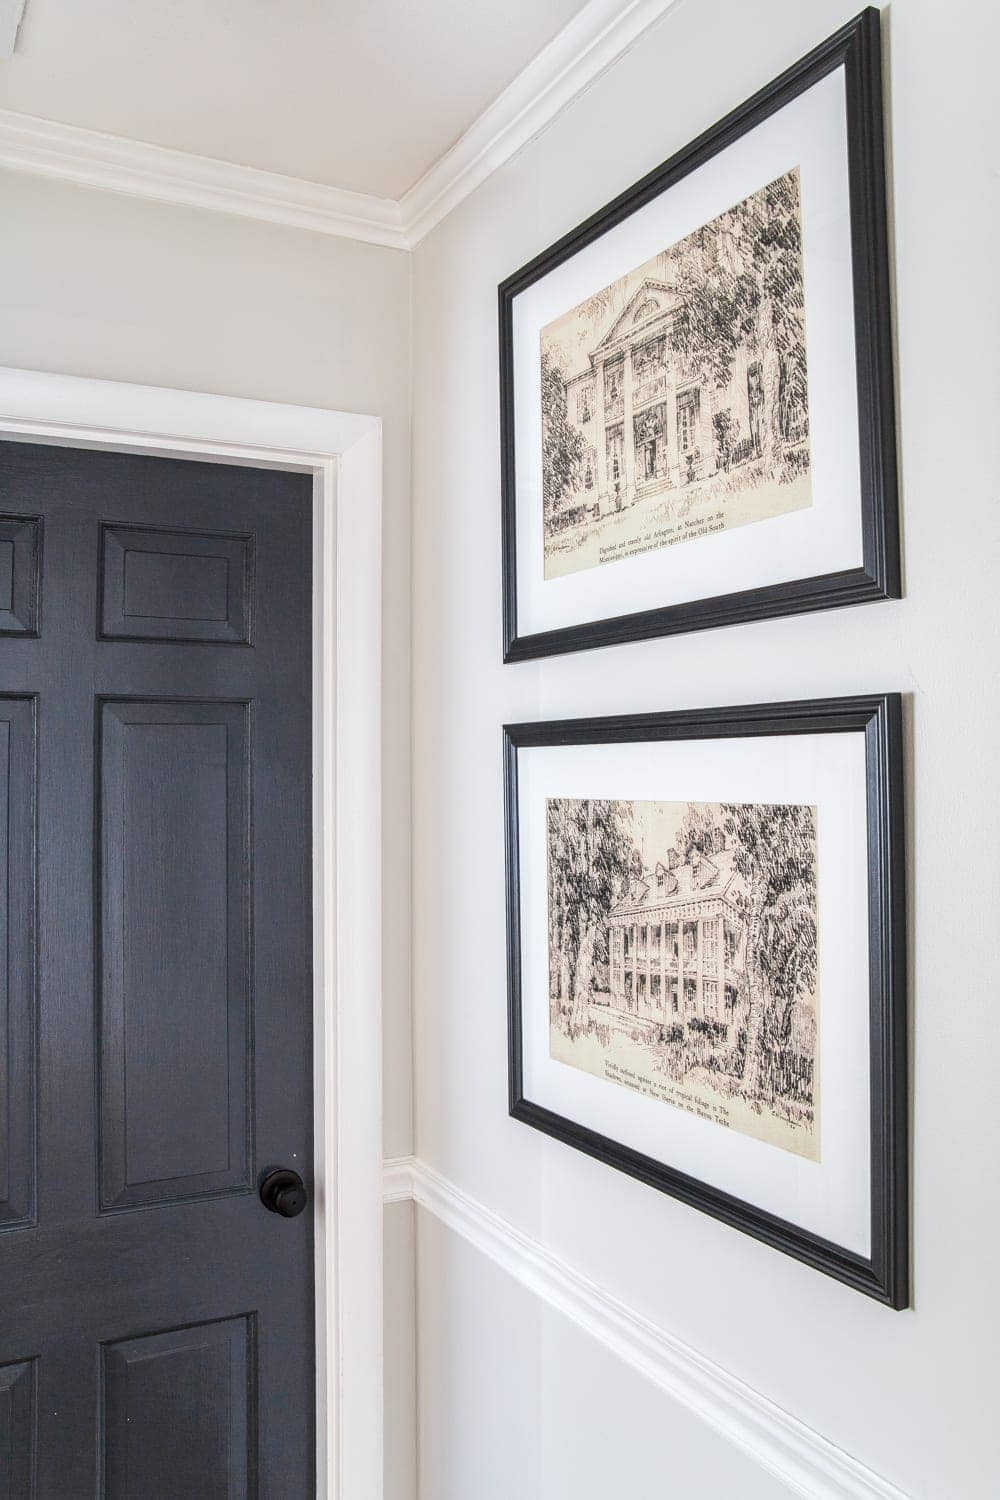 A set of 4 architectural printable art of Southern Antebellum mansions perfect to mat and frame for an antique feel anywhere in your home. #architecturalprints #architecturalart #freeprintableart #freeprintables #freeart #walldecor #hallway